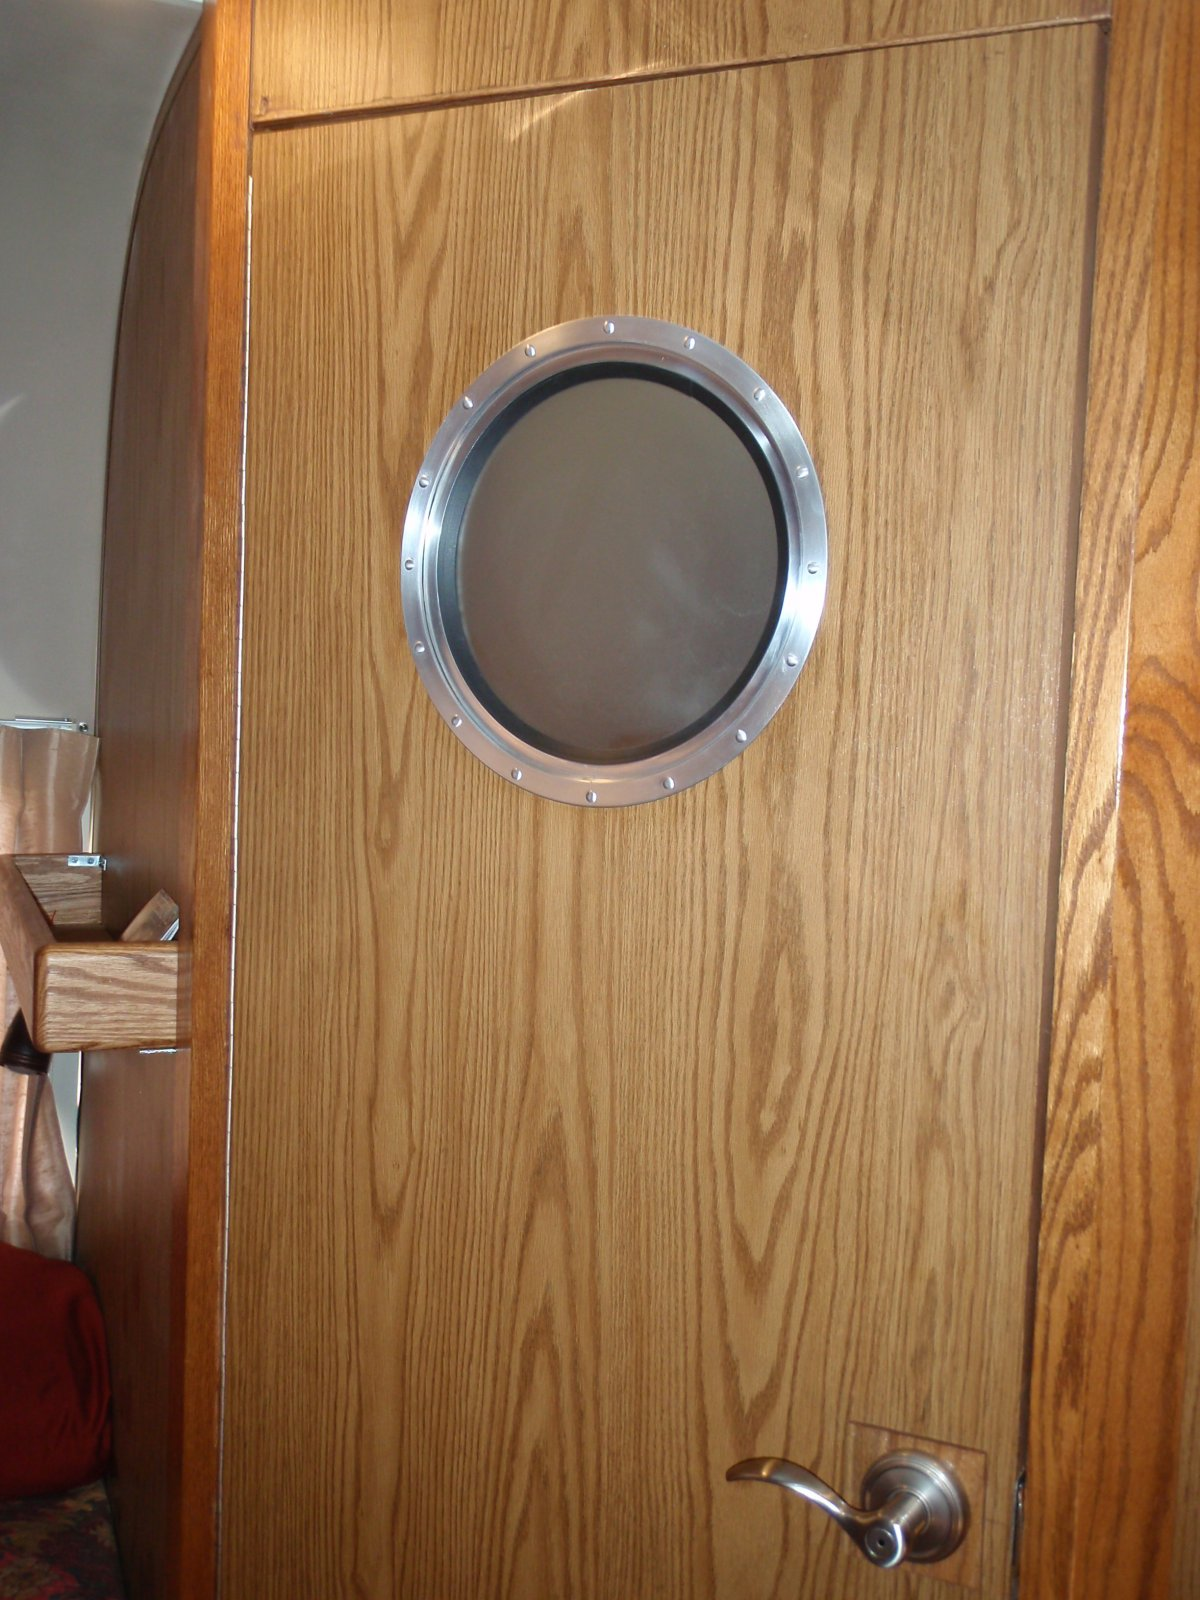 Click image for larger version  Name:Porthole Door New.jpg Views:267 Size:290.4 KB ID:153194